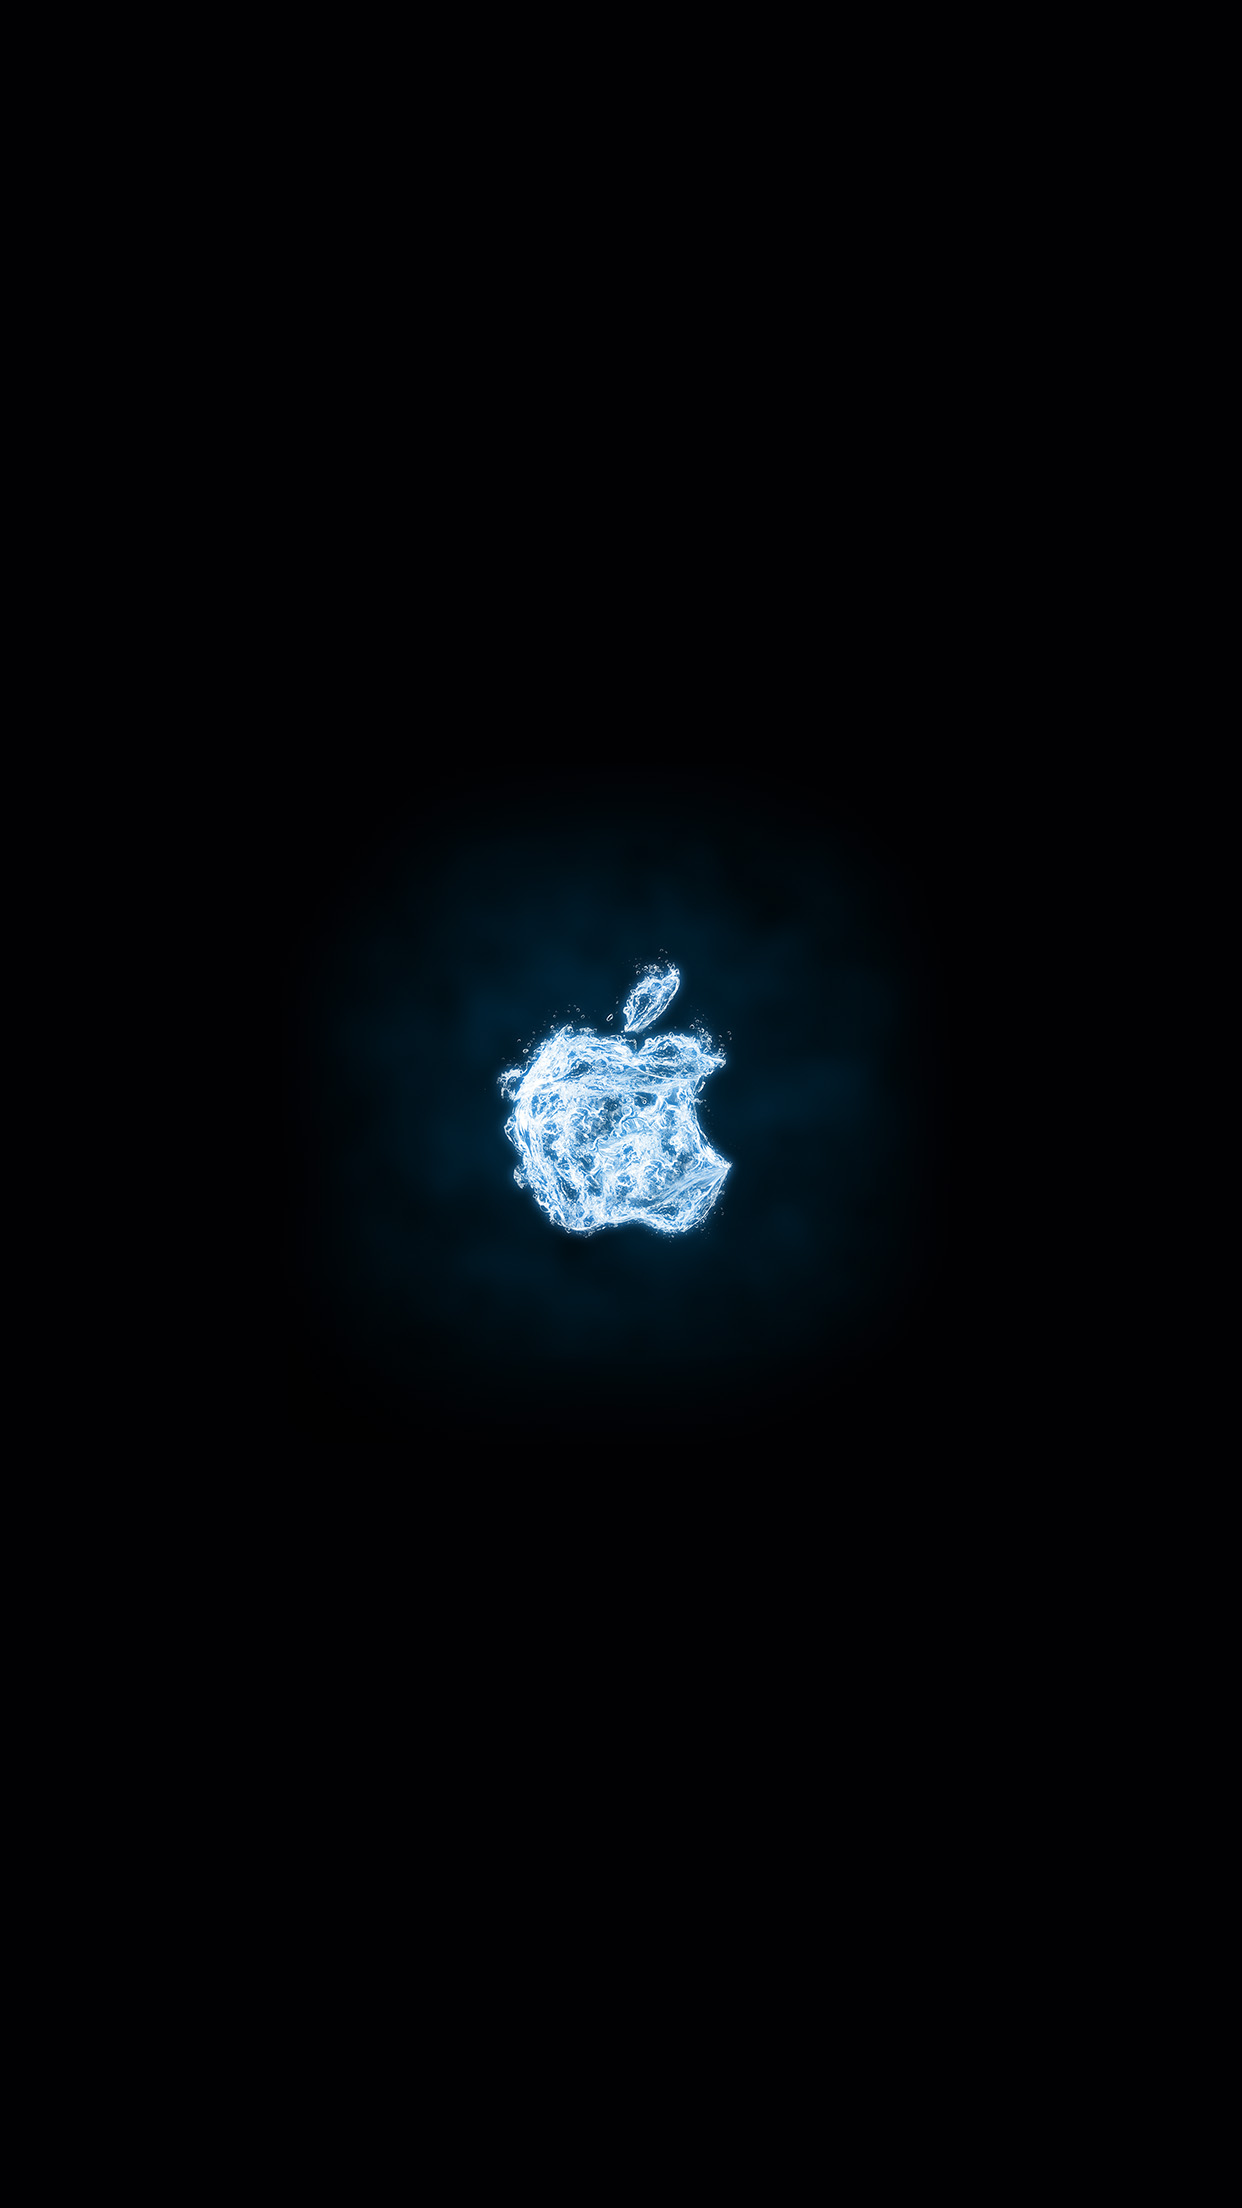 Iphone wallpaper at06 apple logo dark water - Classic art wallpaper iphone 5 ...